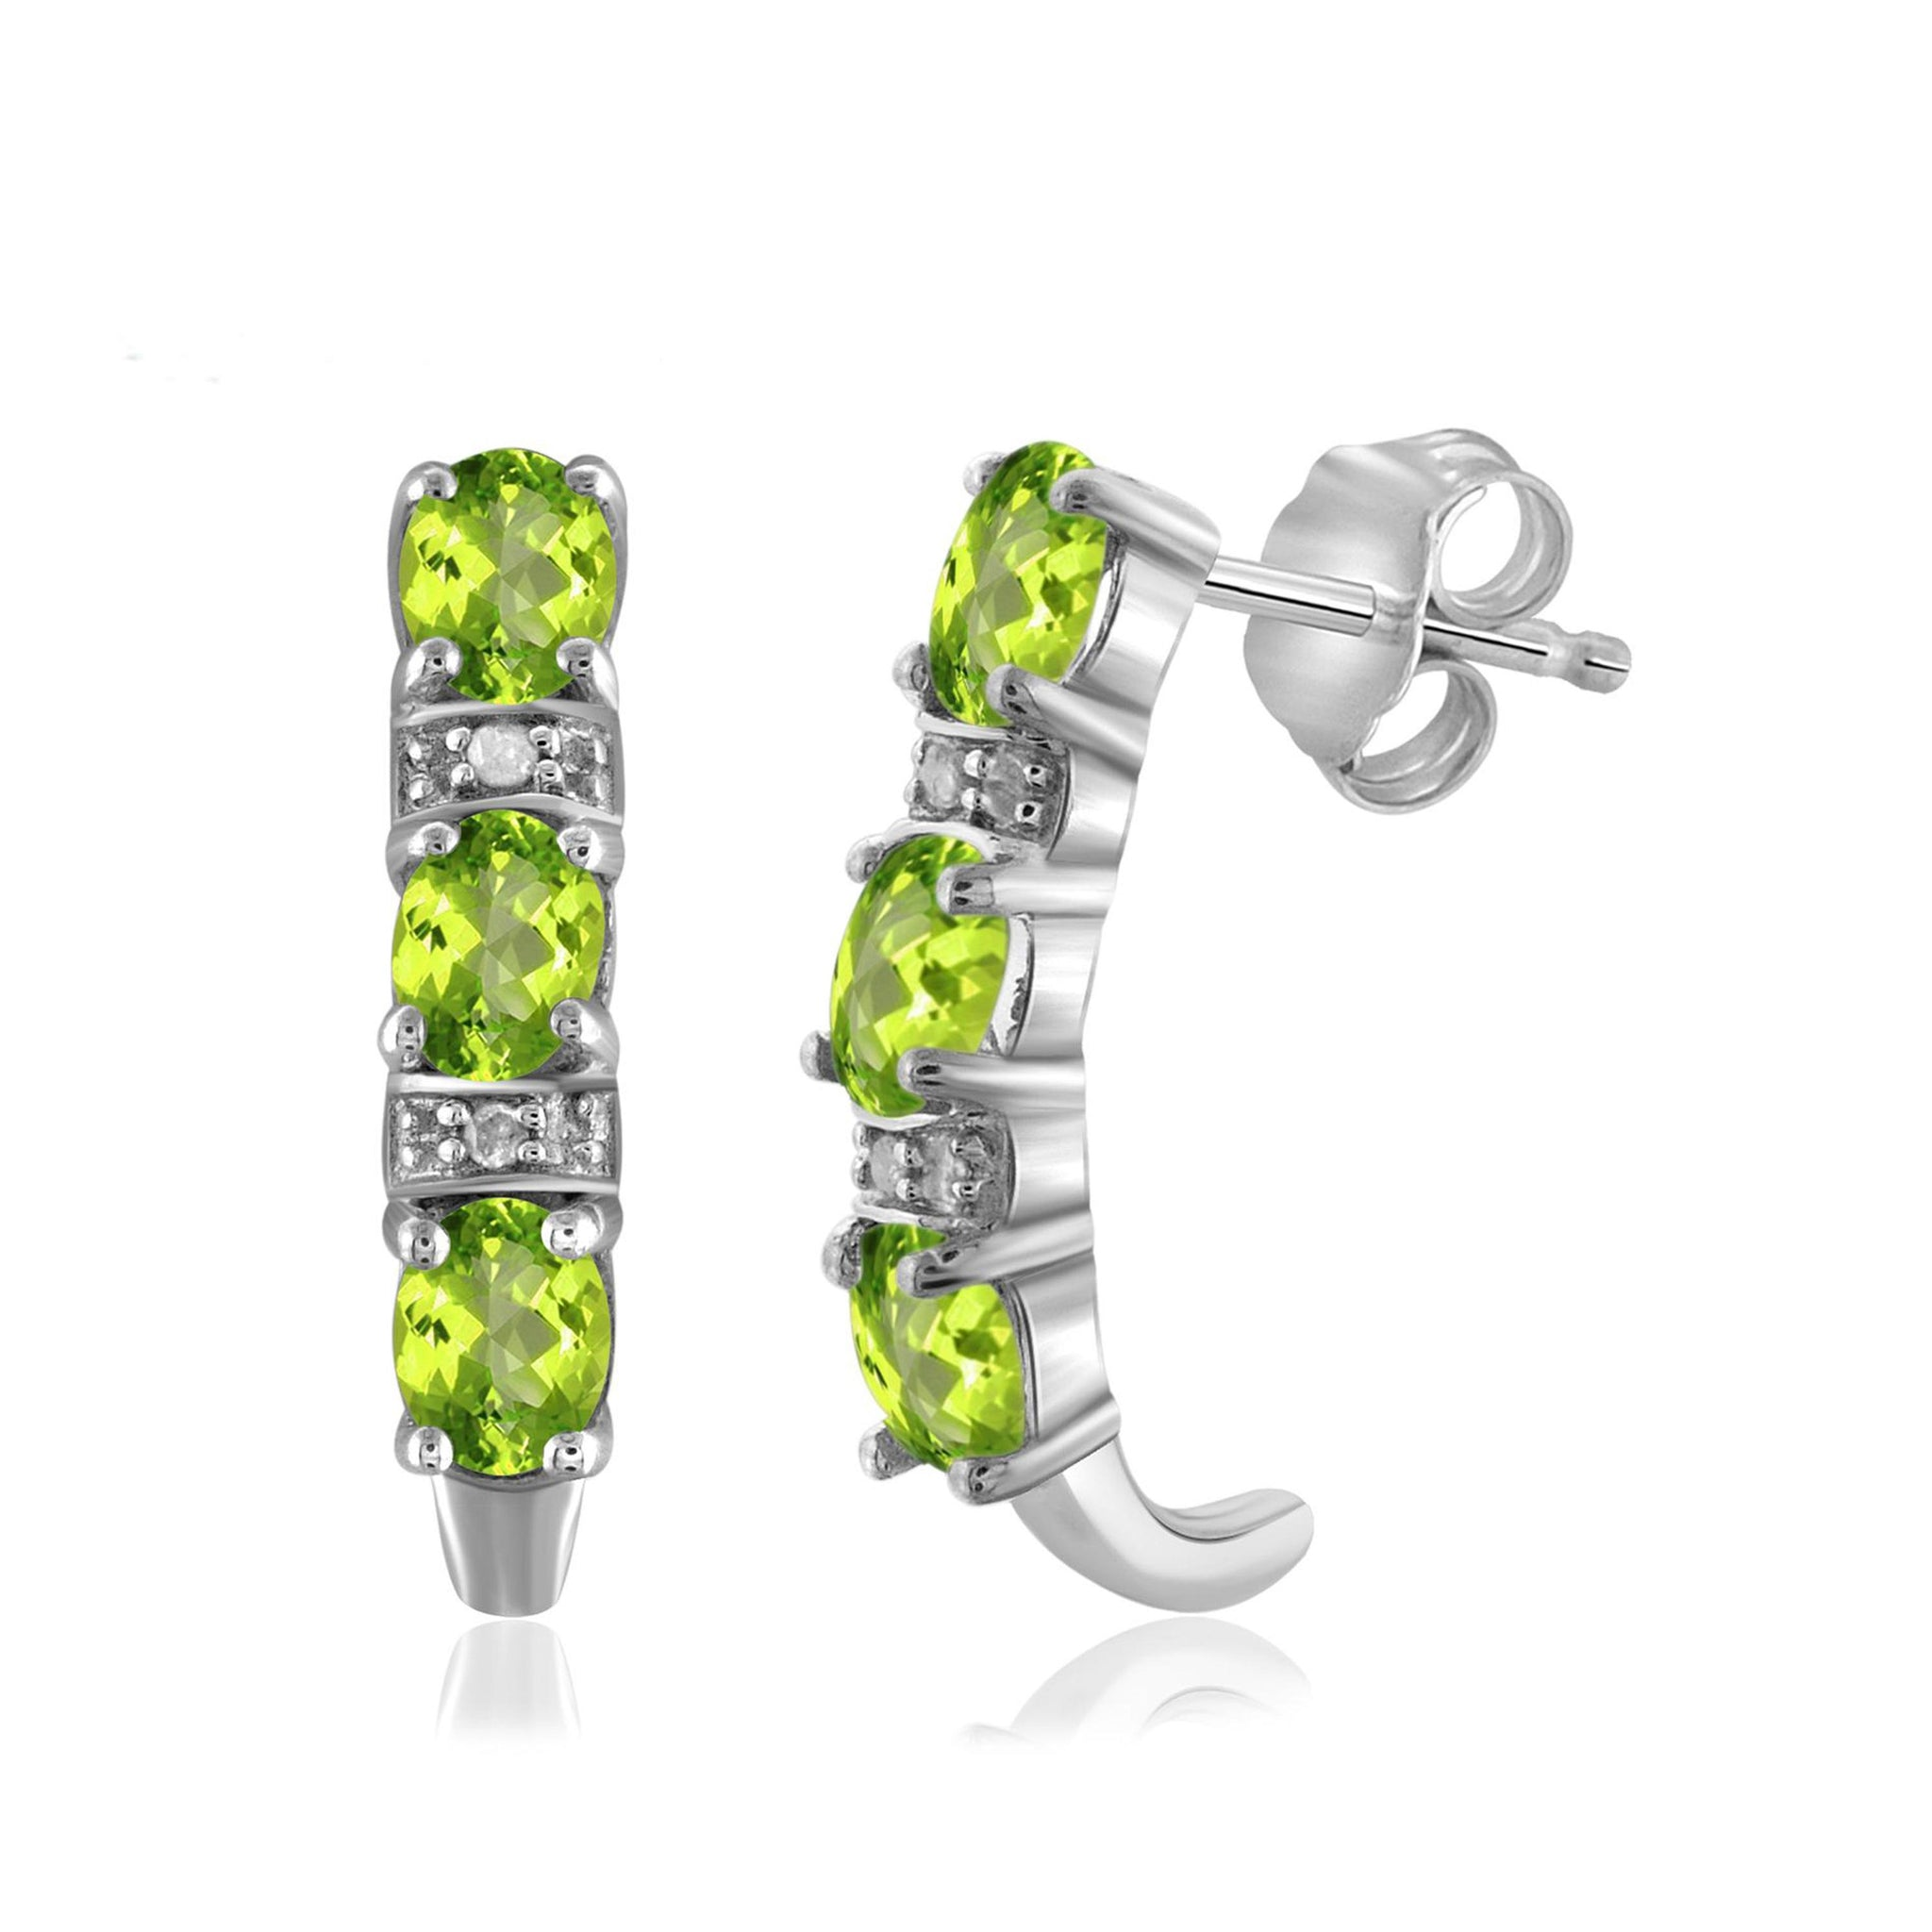 JewelonFire 1 1/5 Carat T.G.W. Peridot and White Diamond Accent Sterling Silver Dangle Earrings - Assorted Colors